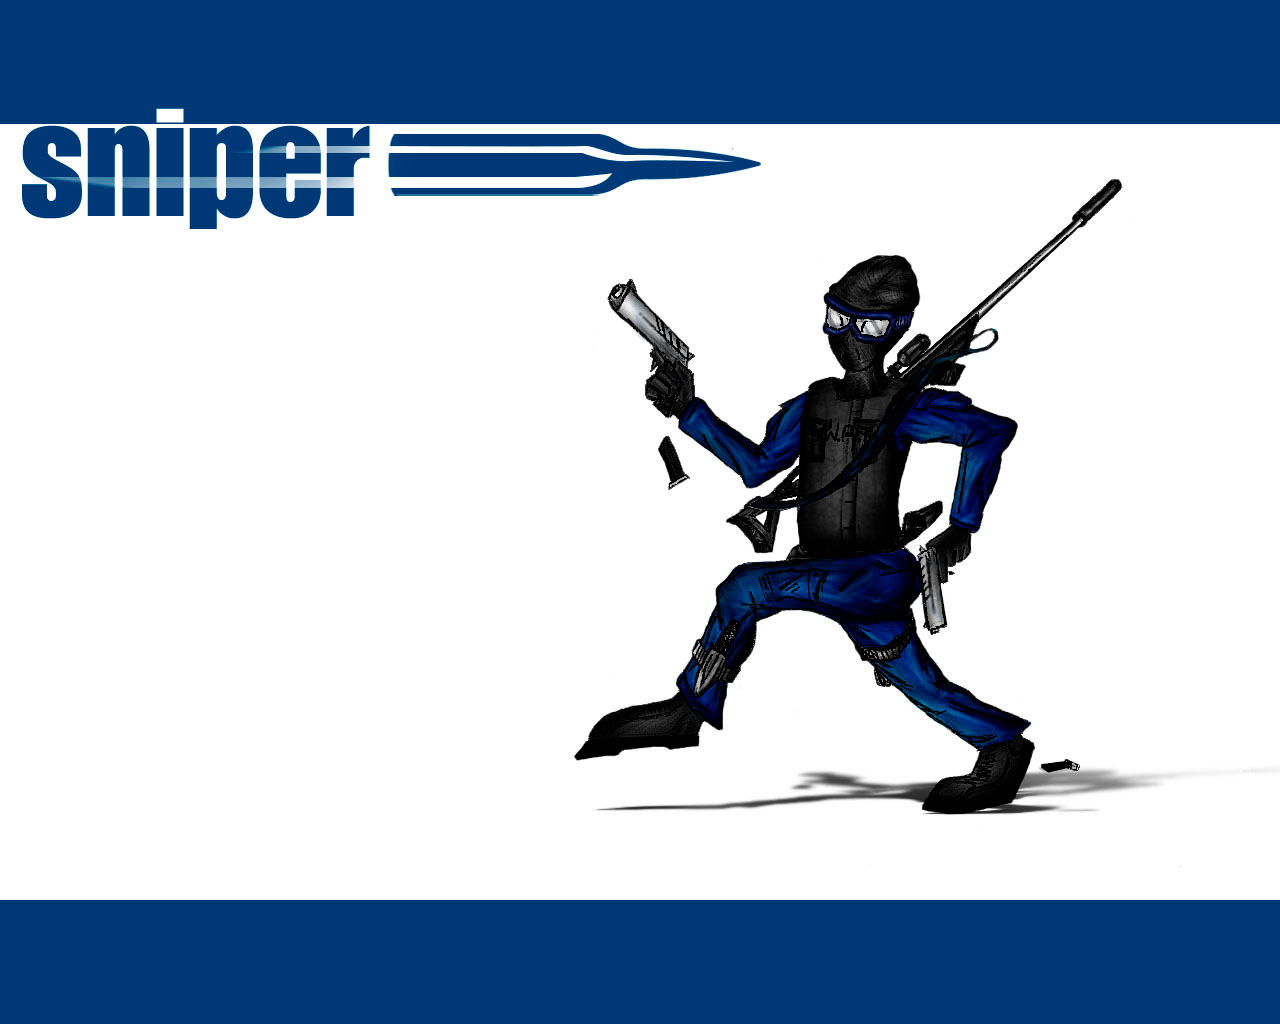 -Sniper Sketch by outthere